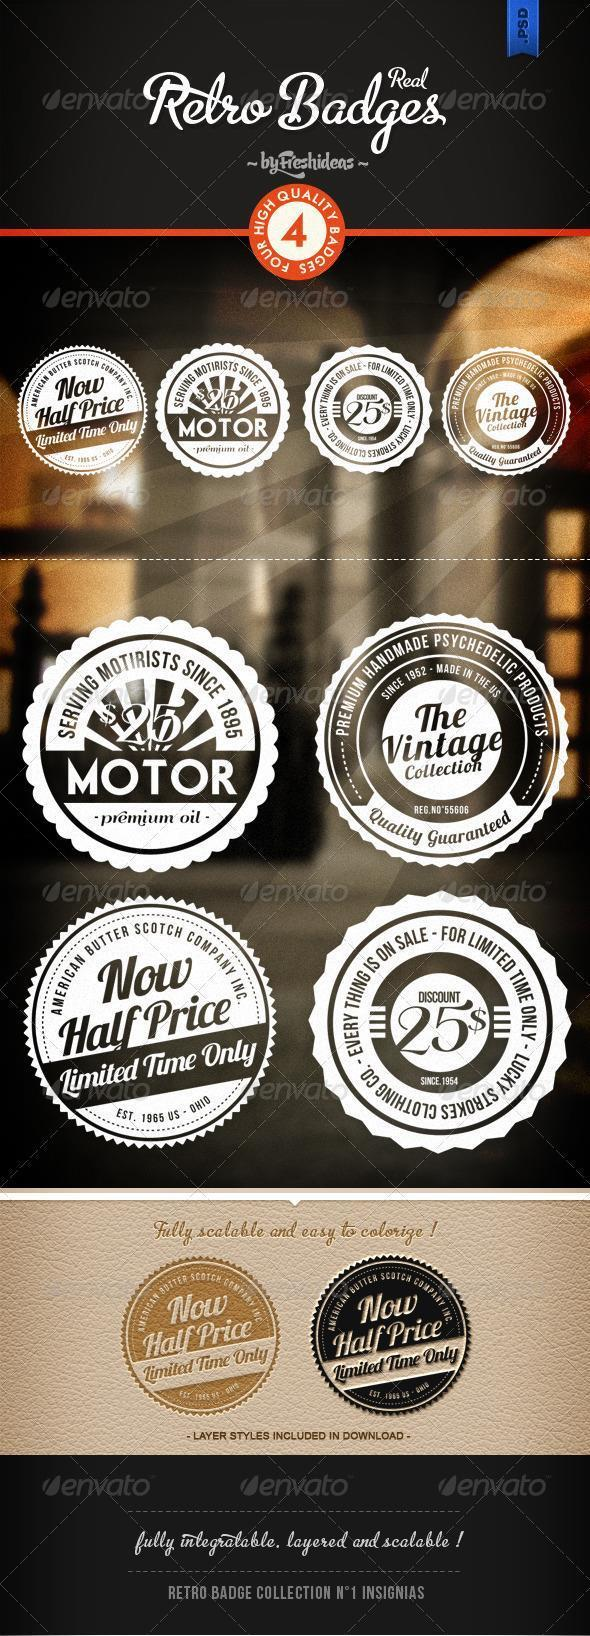 Round Retro Badges and Labels PSD Layered